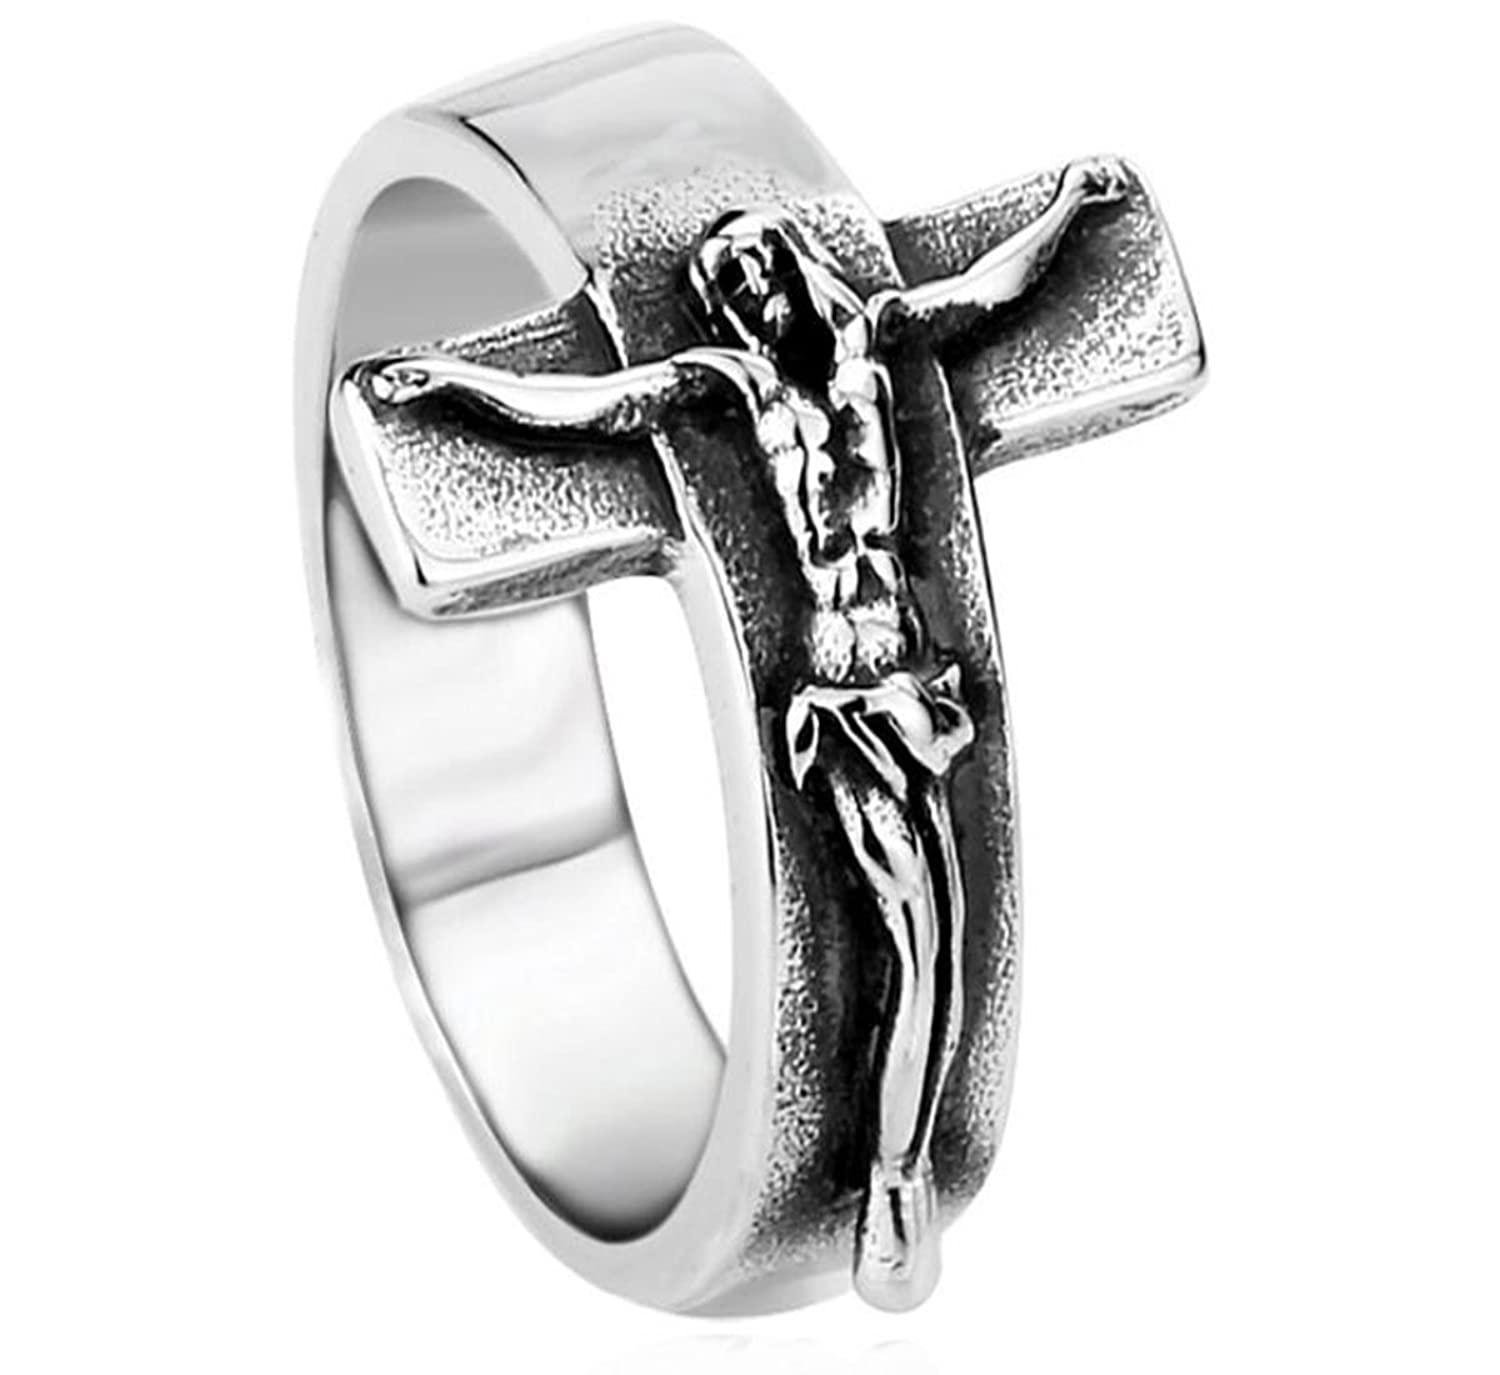 gold cross with wedding inch apply restrictions the crucifix catholic company may rings